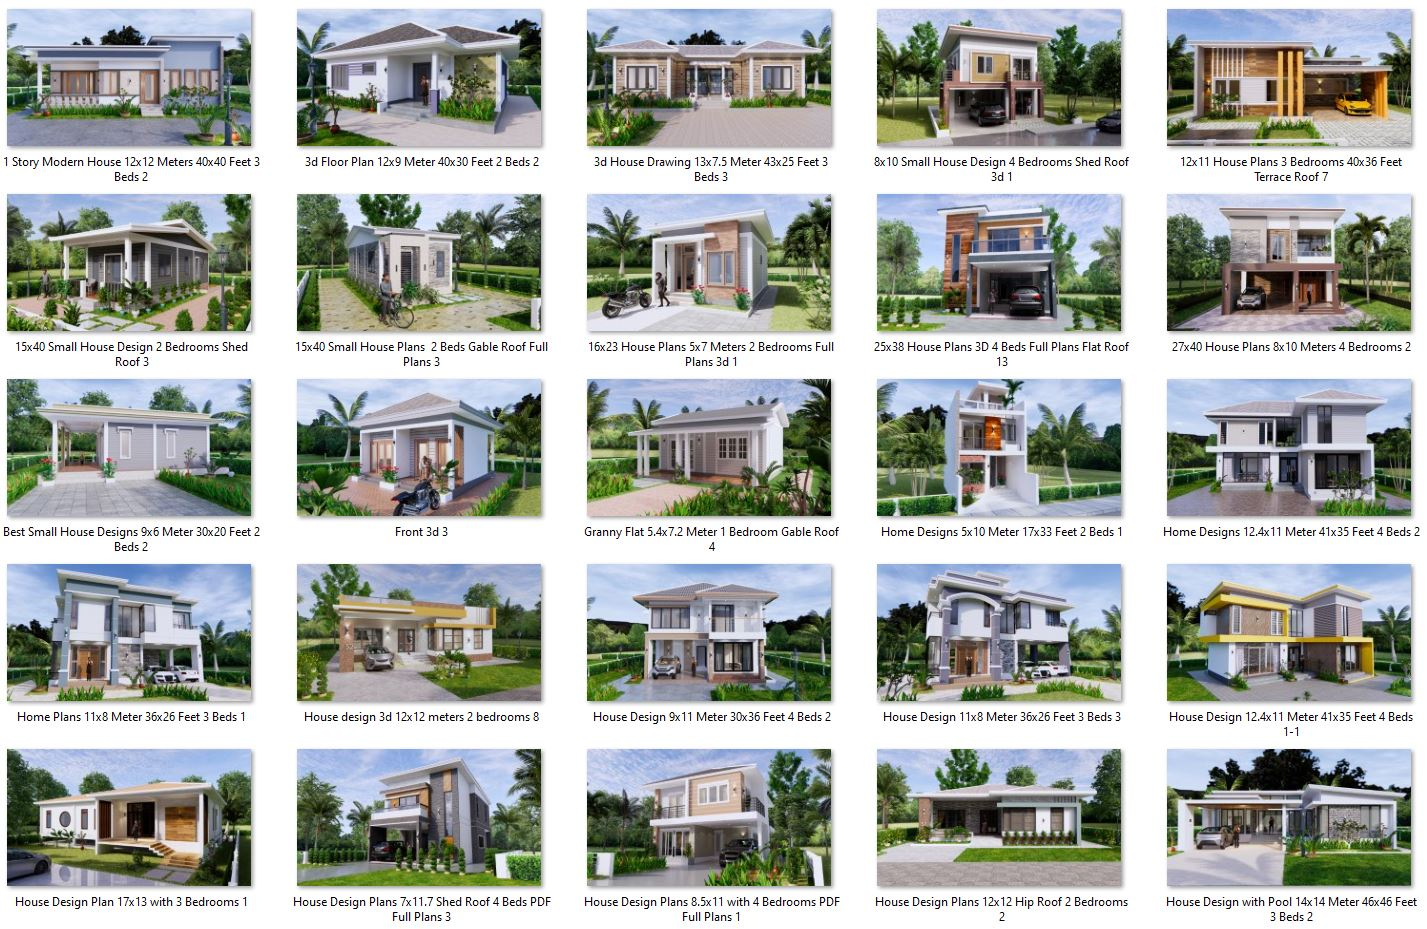 74 House Design Plans Available For Sell 01